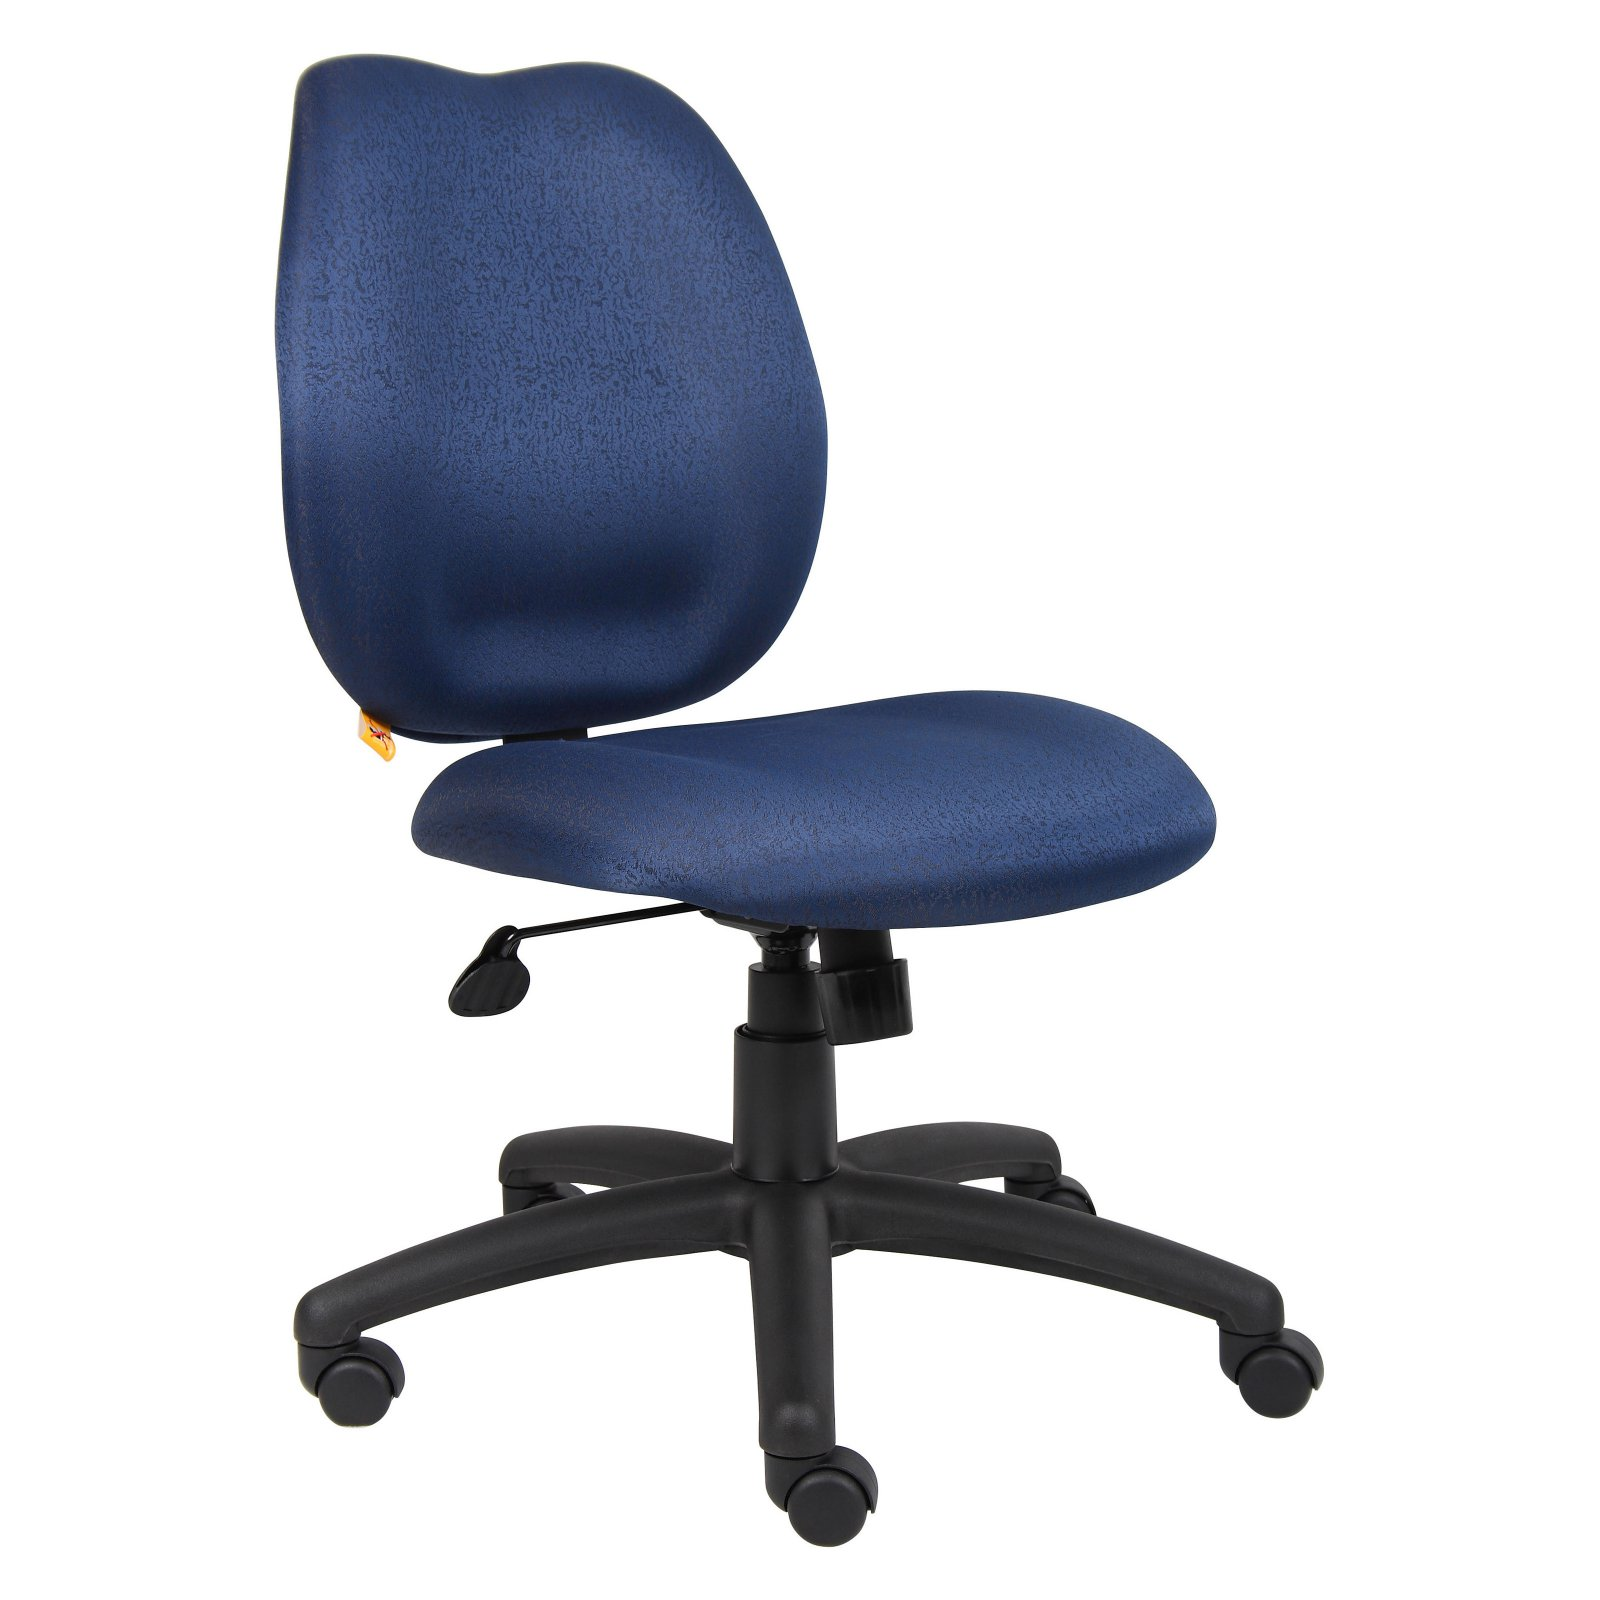 Boss Office & Home Black Mid-back Adjustable Task Chair